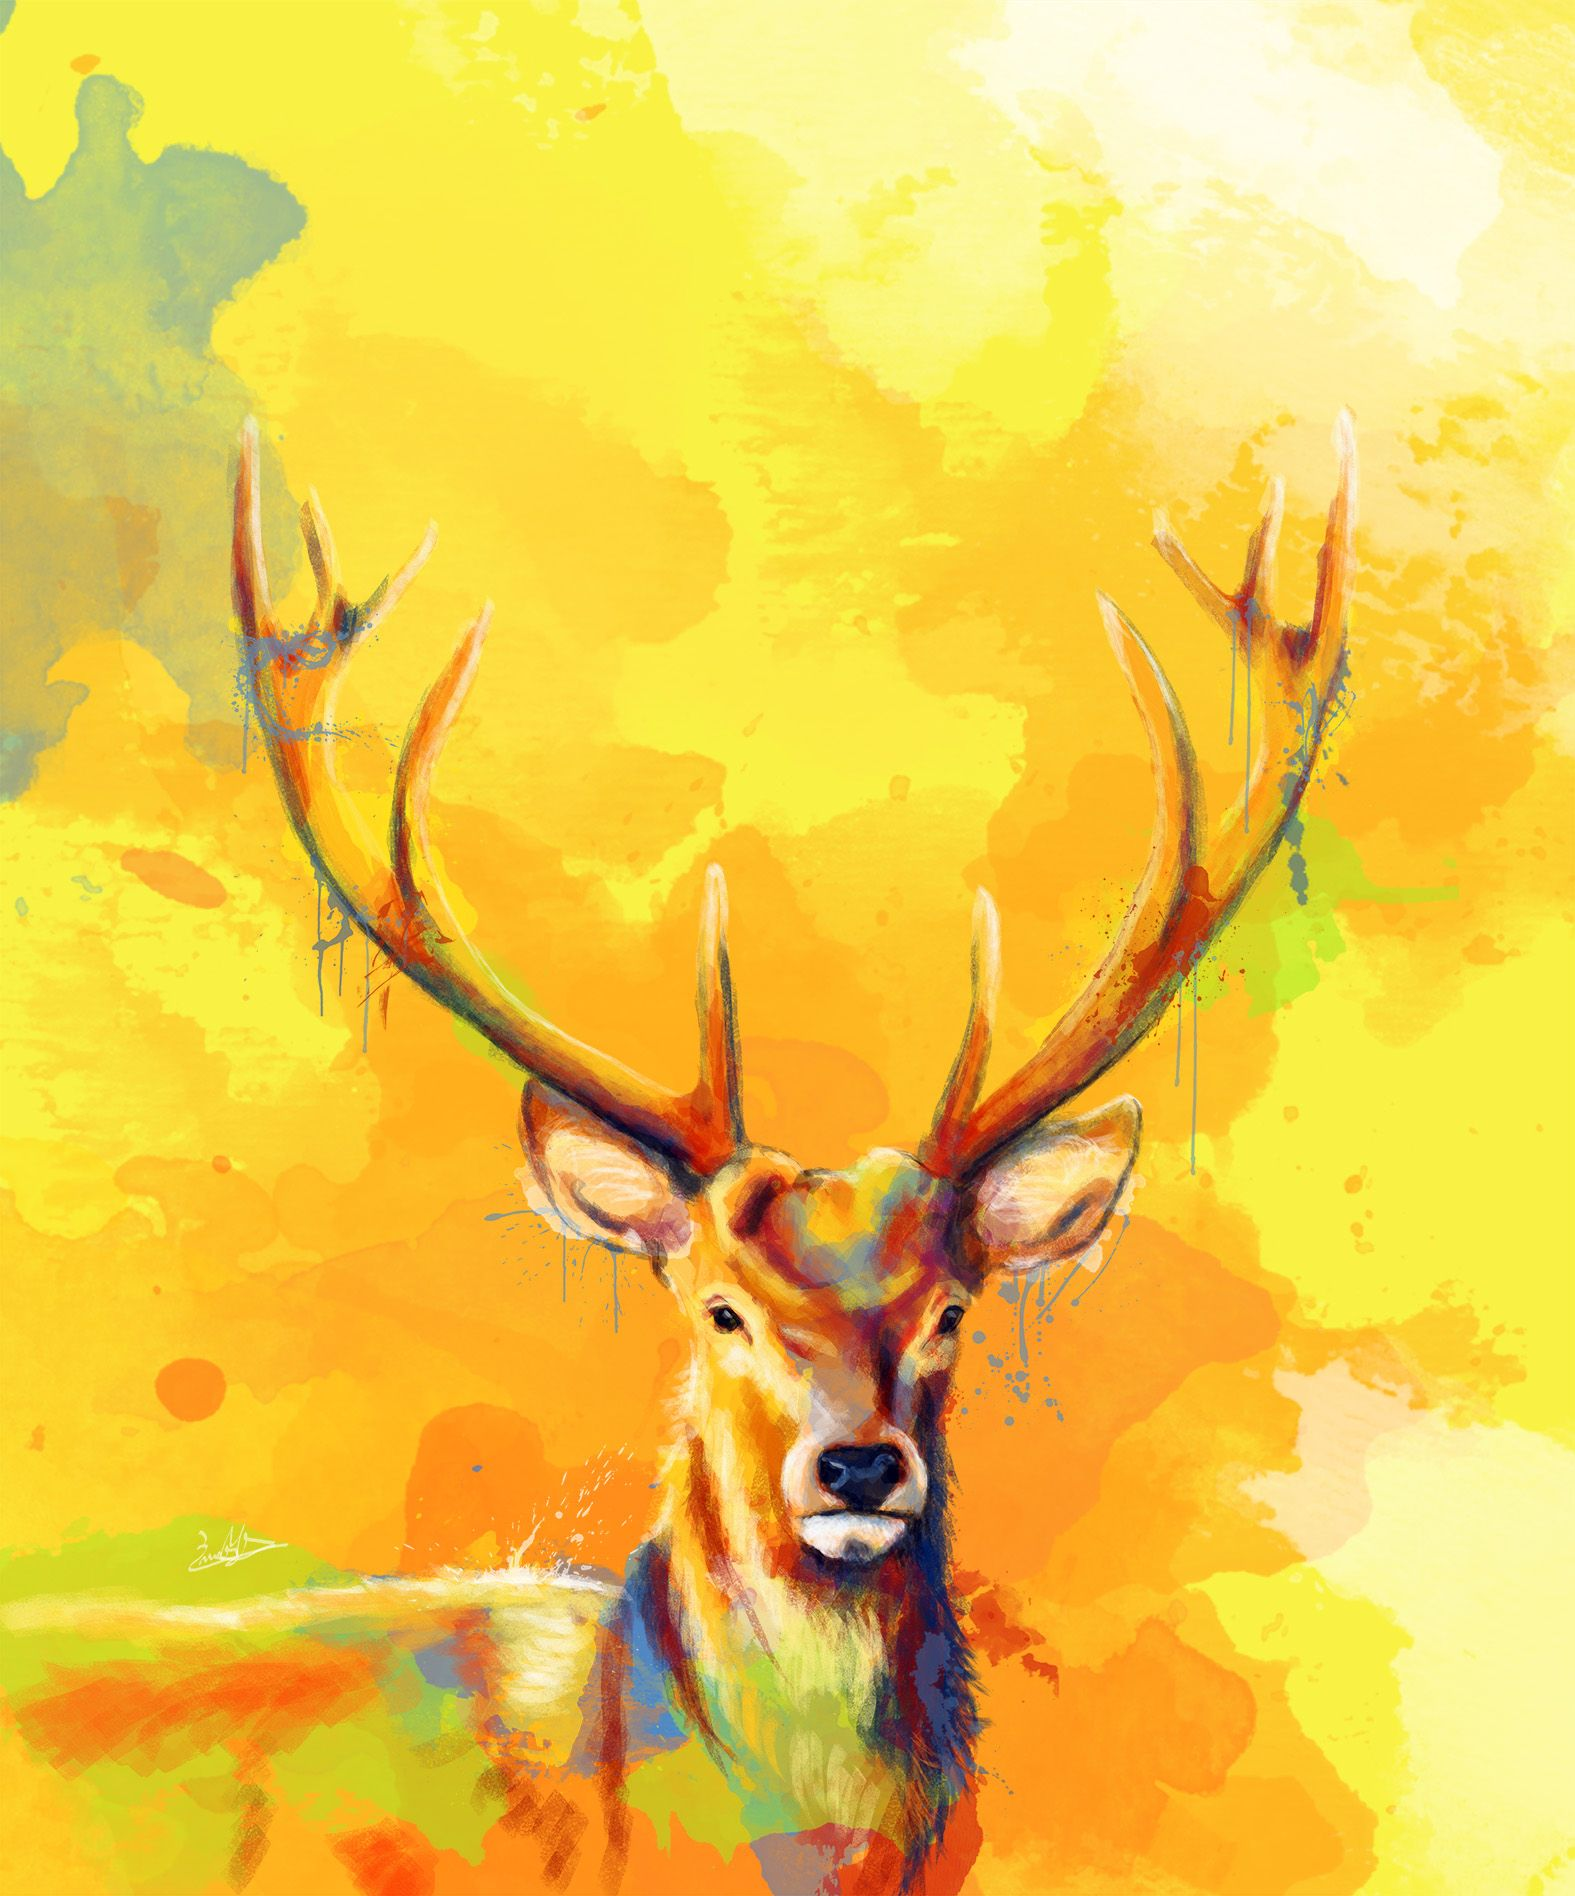 Forest King Digital Painting. Colorful Painting Of Majestic Deer